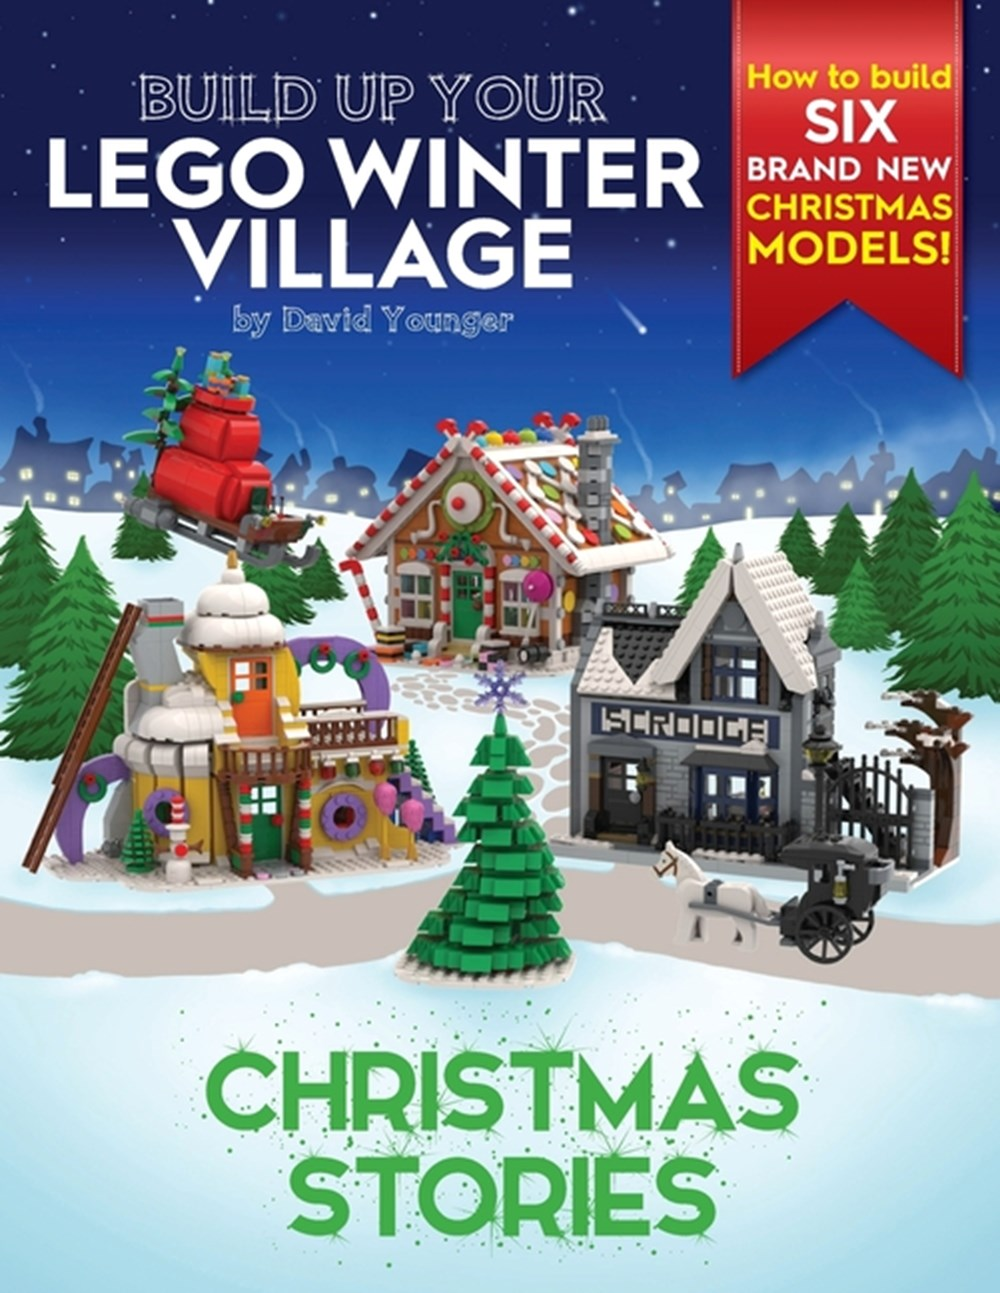 Build Up Your LEGO Winter Village Christmas Stories